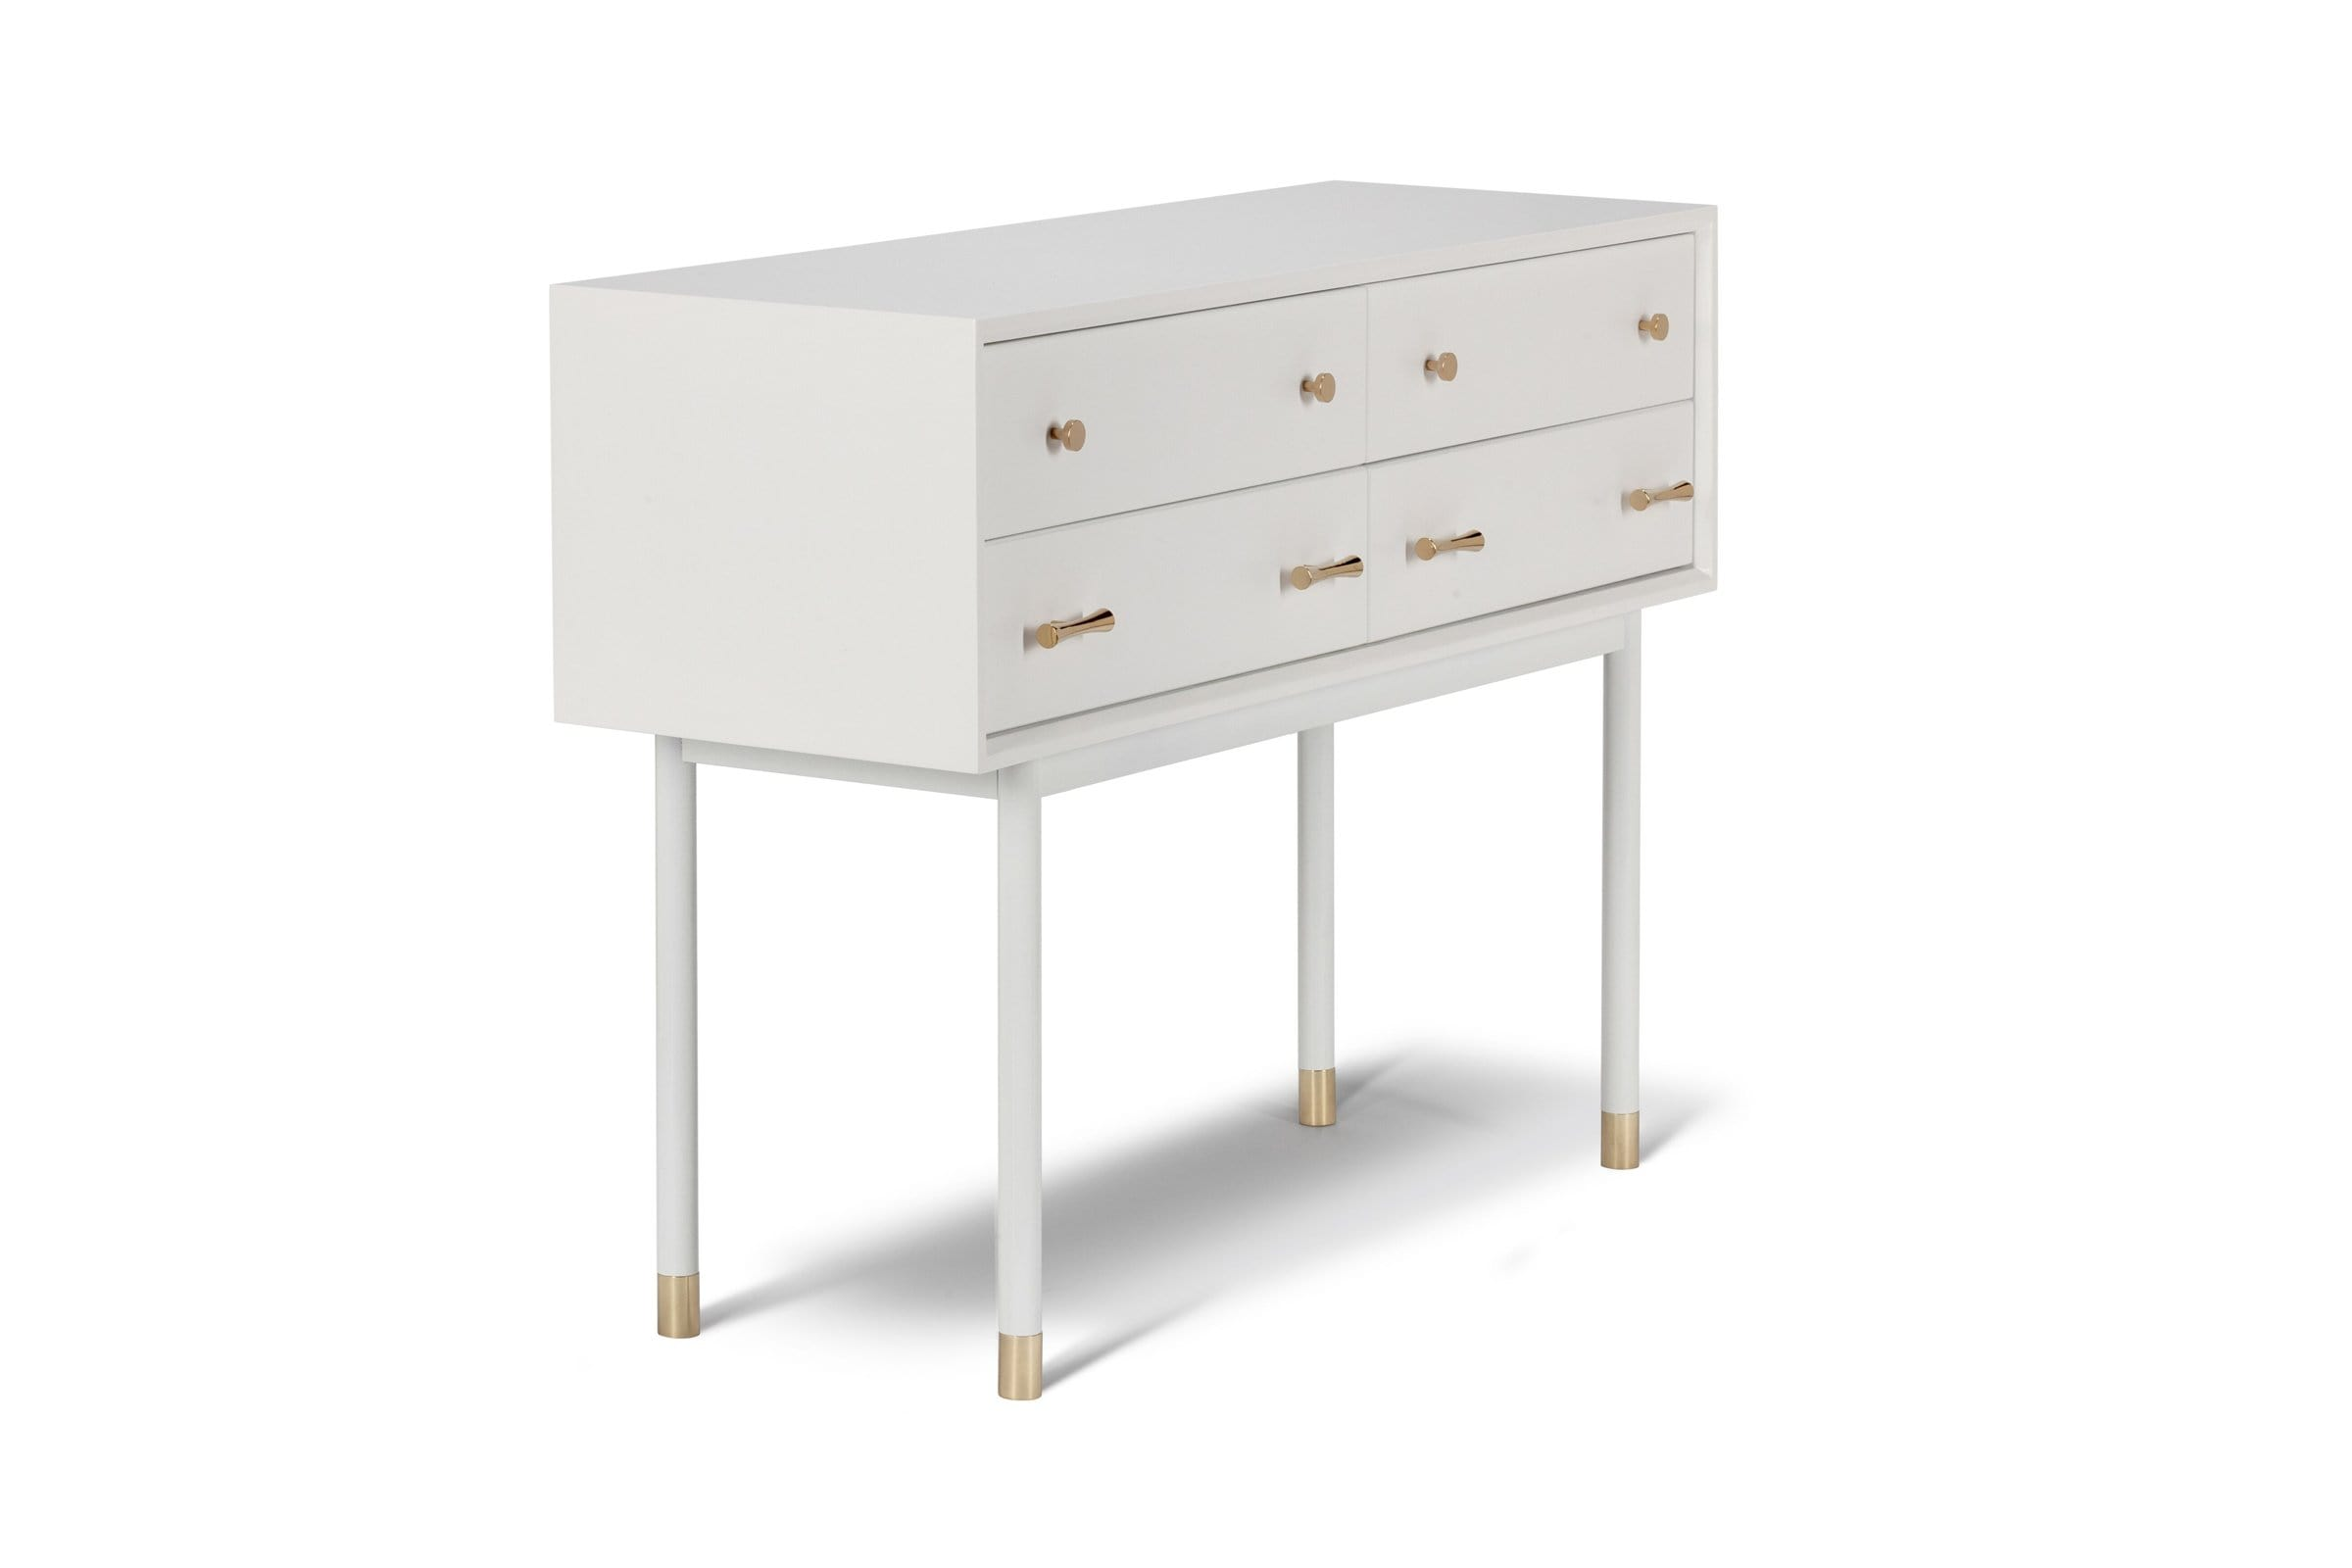 Chloe Console Table - Modern Console Table - Sold by Apt2B